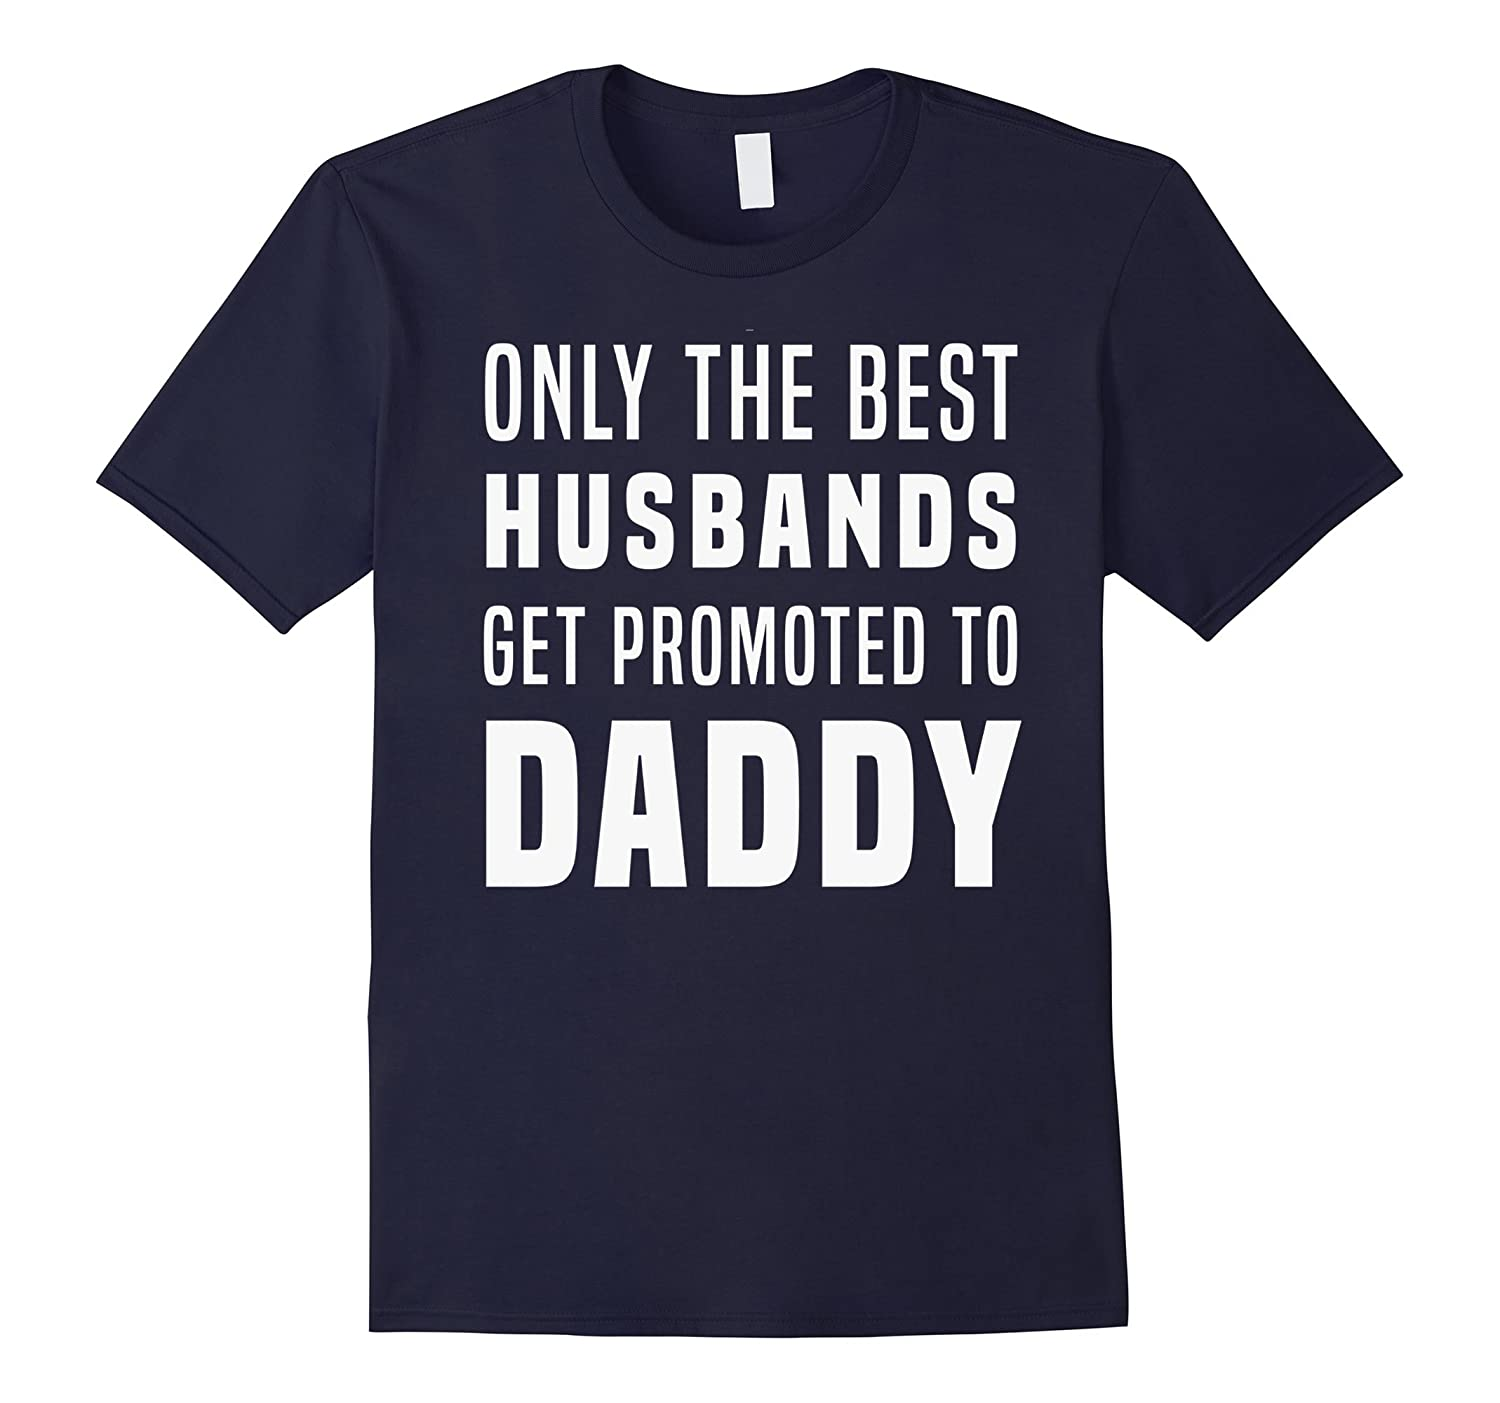 Only the best husbands get promoted to daddy tshirt men-TH